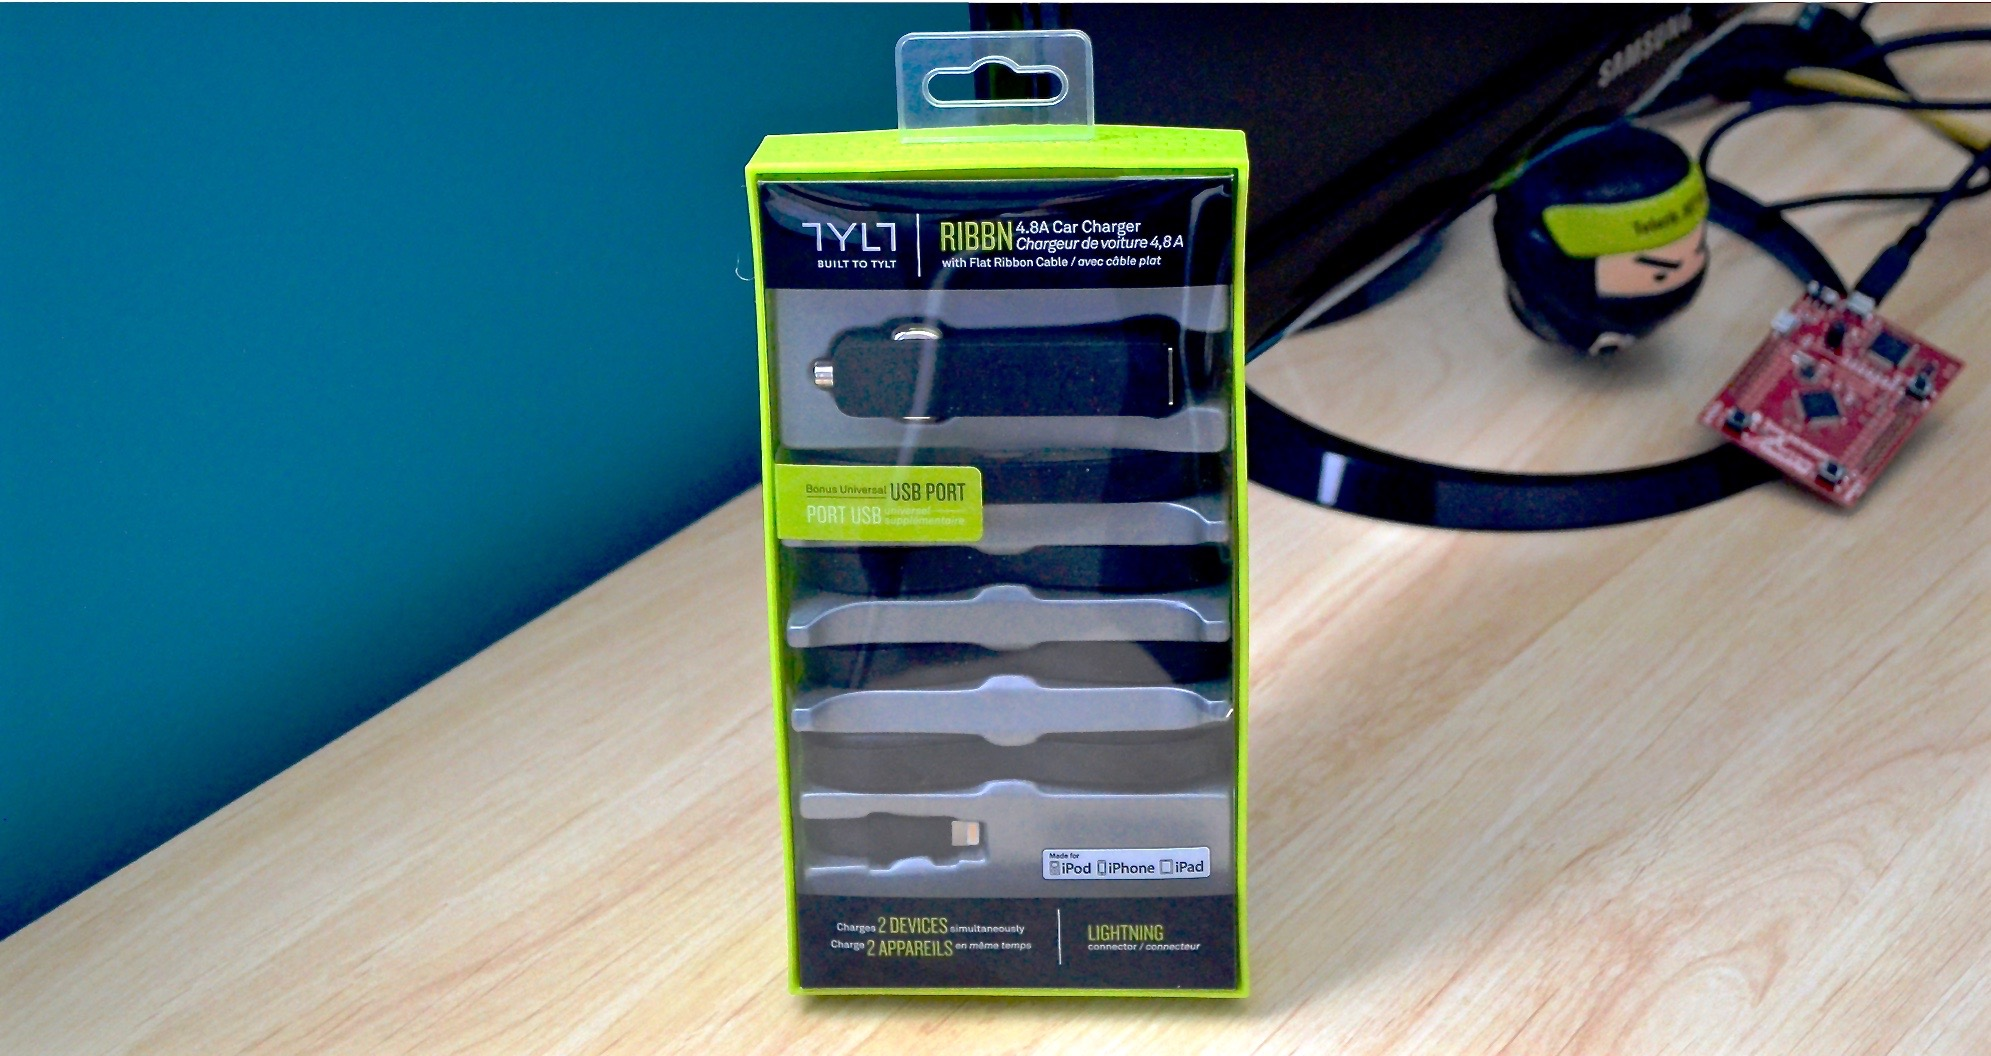 TYLT_RIBBN_Car_Charger_9